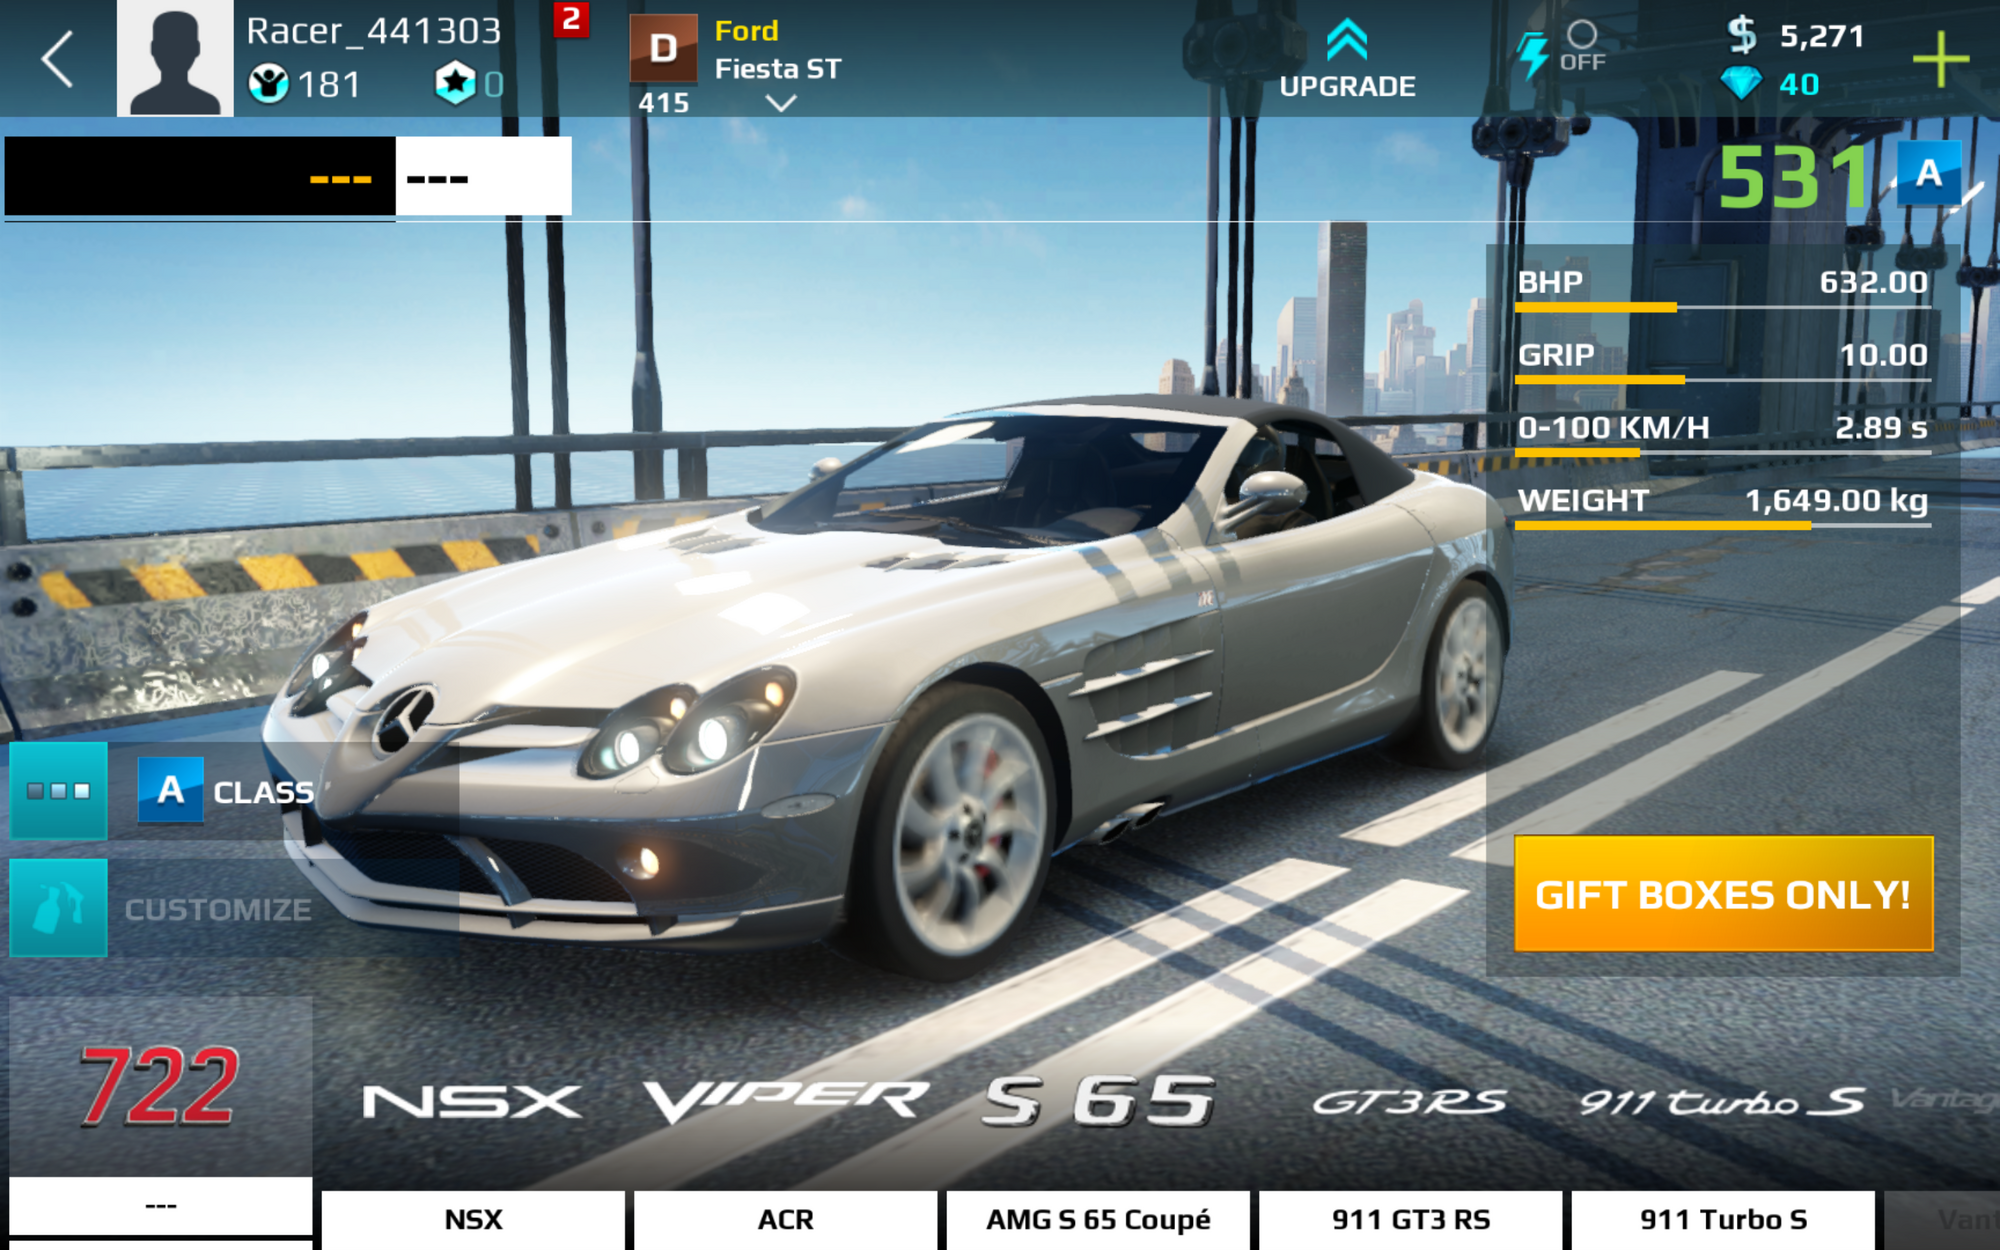 Mercedes Benz Slr Mclaren 722 Edition Asphalt Wiki Fandom Powered By Wikia